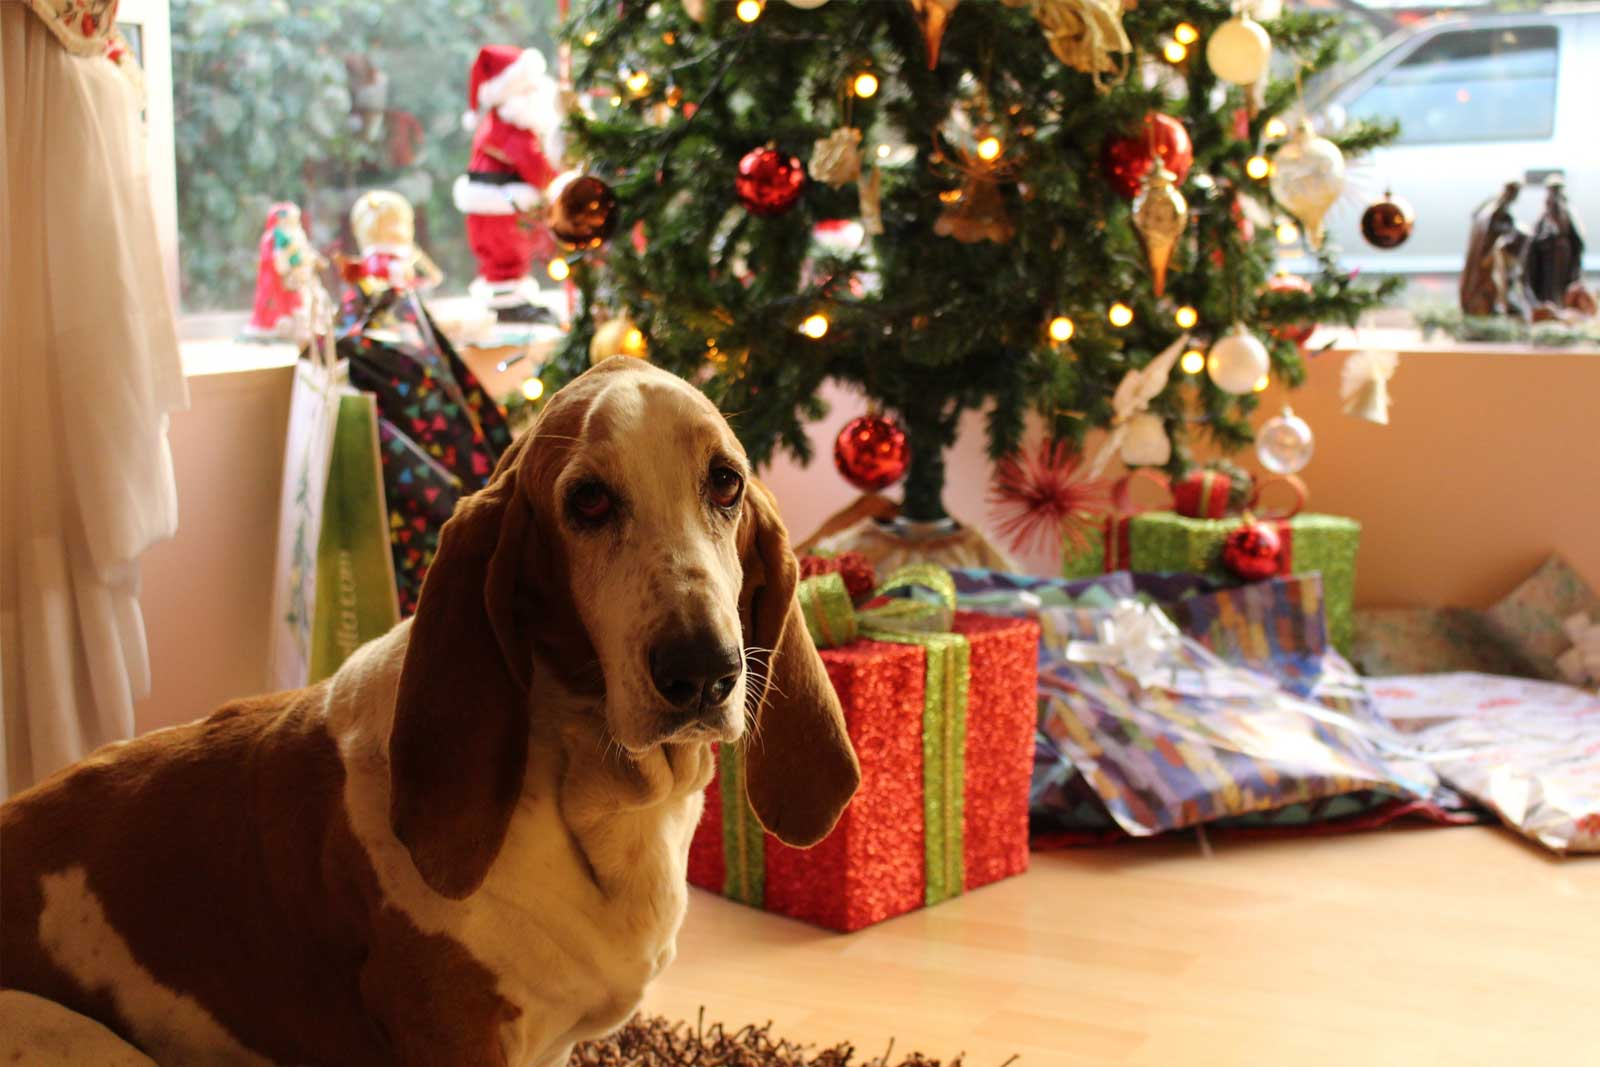 It's that time of year again when people start to panic about what to get their significant other, their pet of course. But don't worry, we've got you covered!